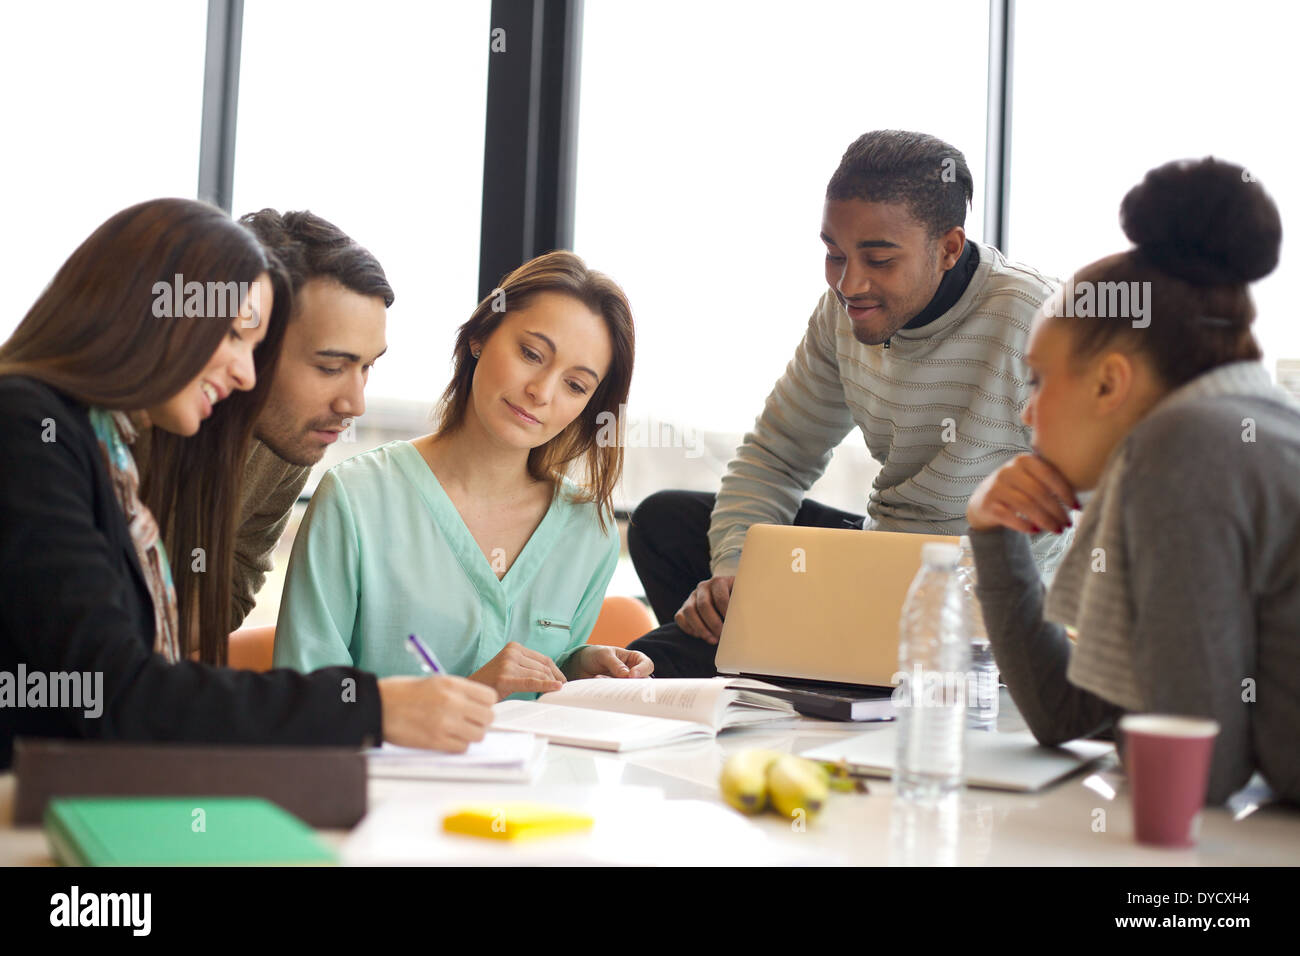 Diverse group of young students working together on school assignments. Multiethnic people studying together at a table. - Stock Image